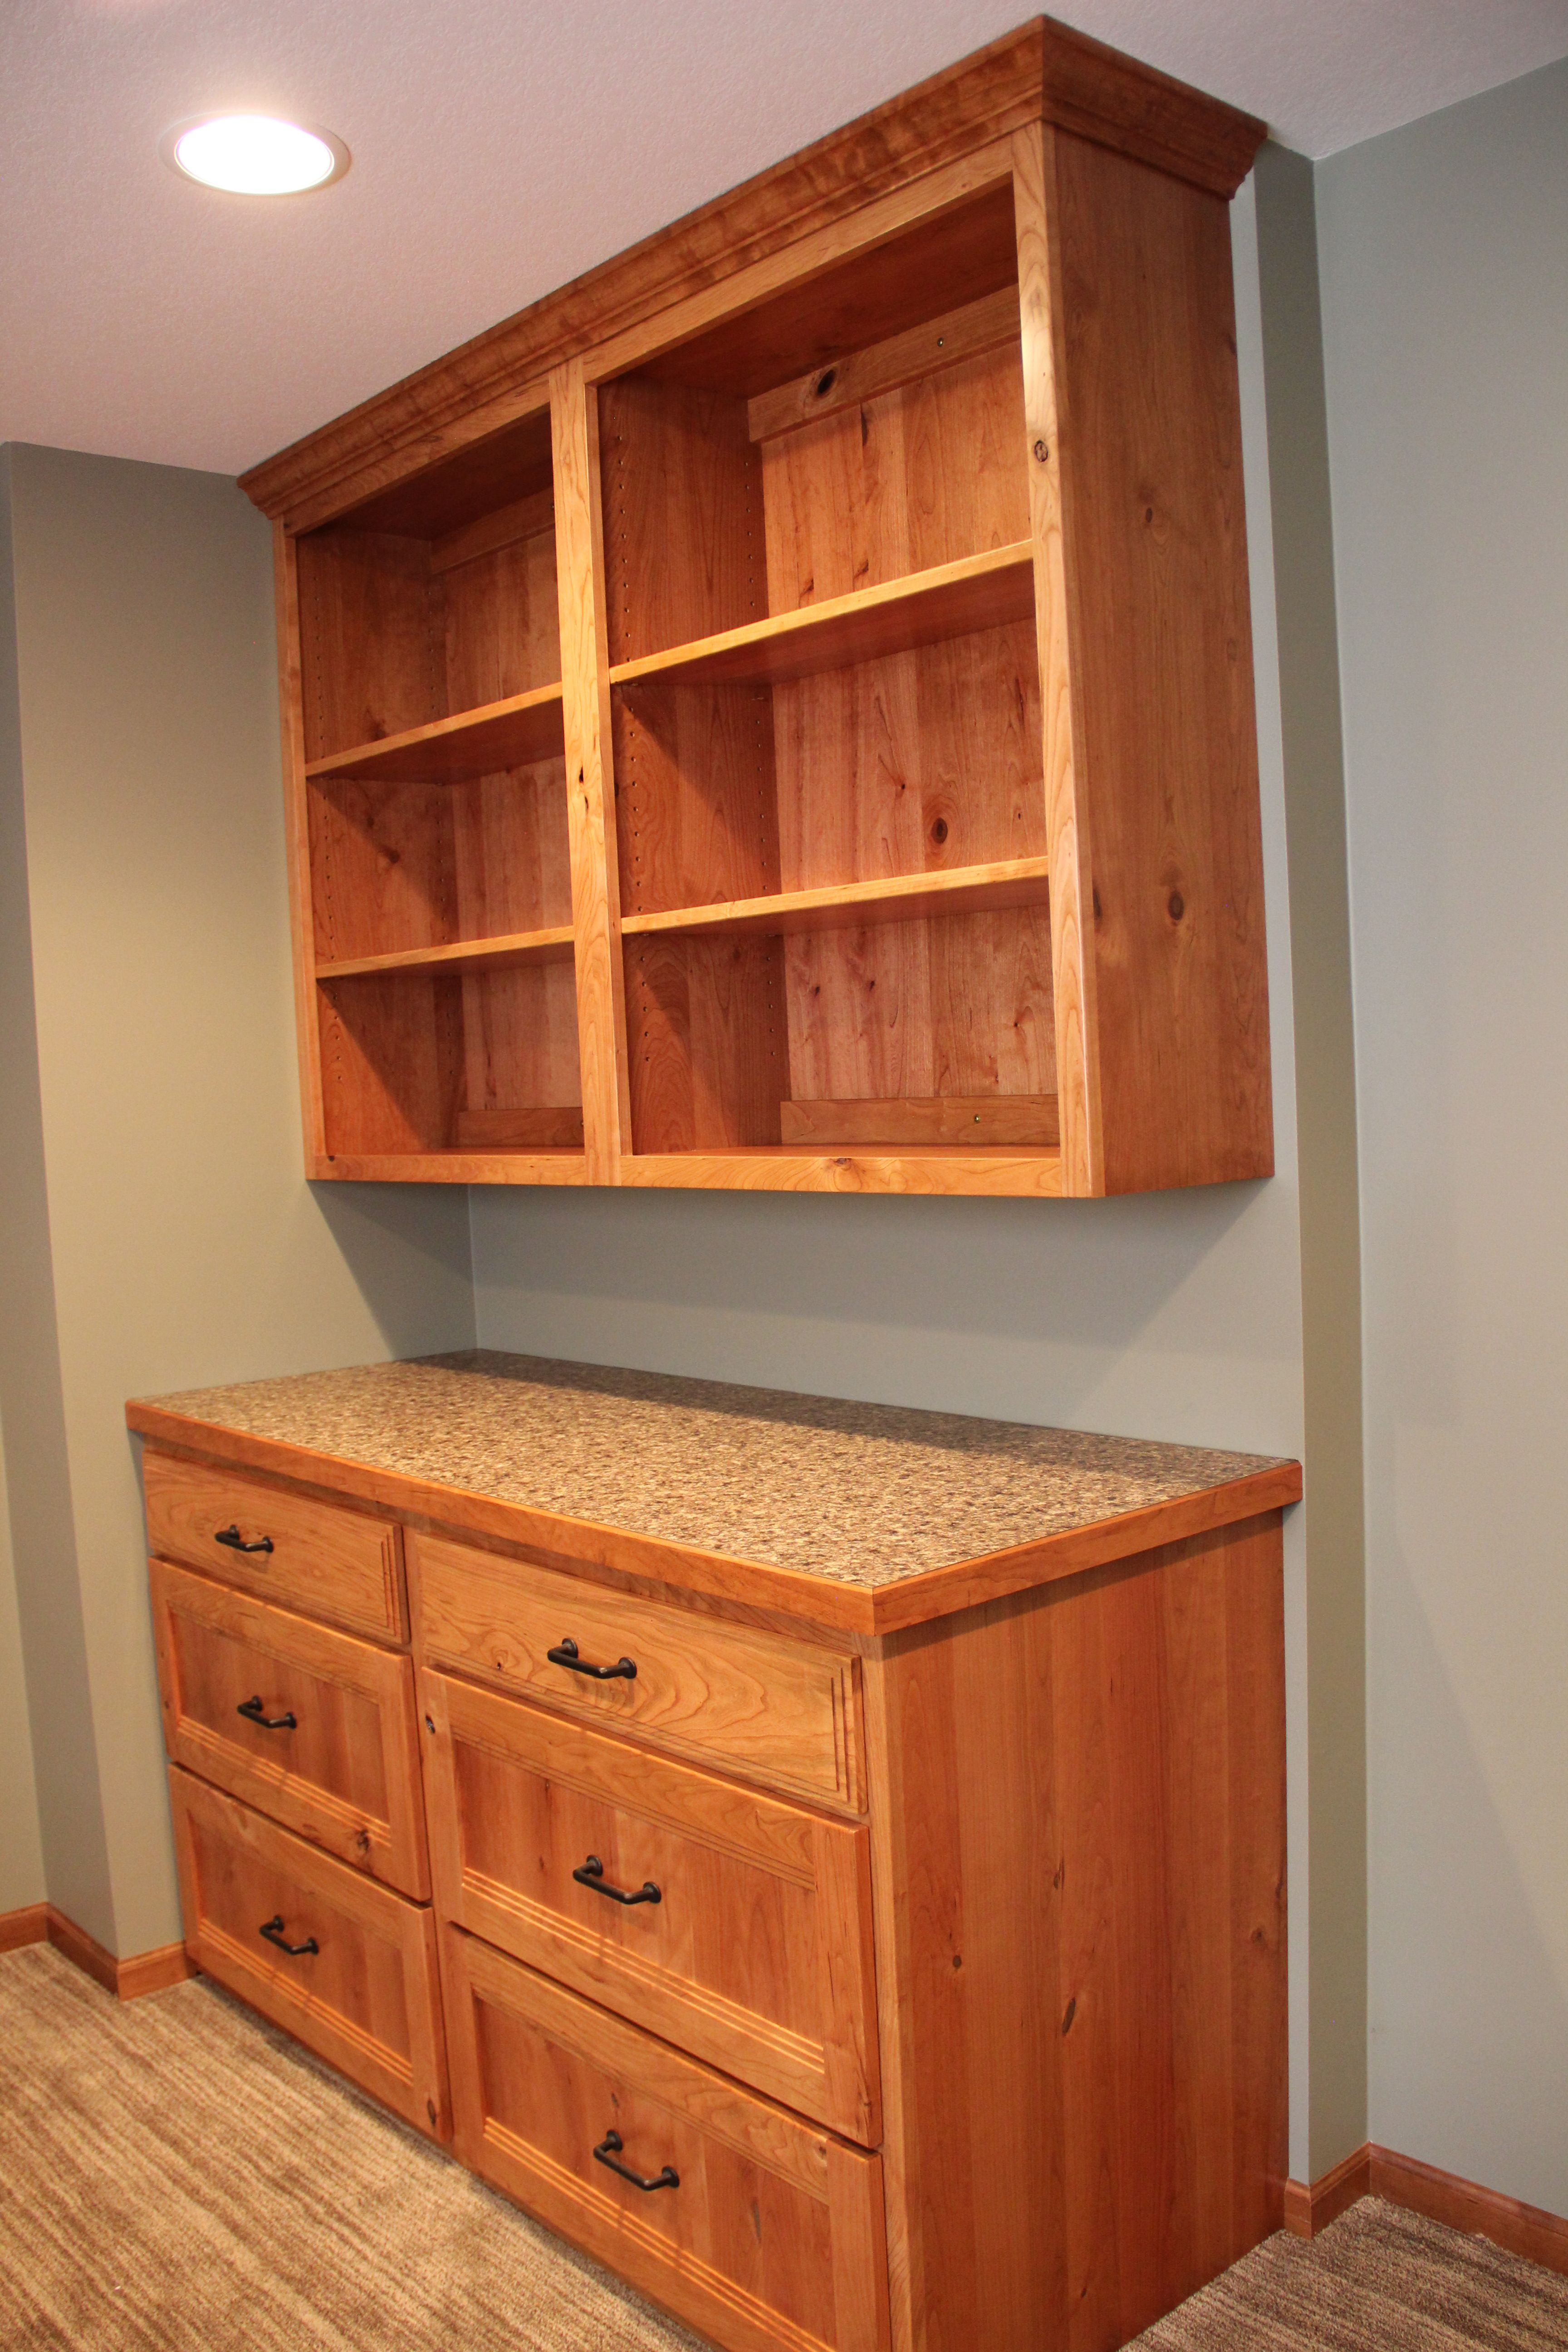 Custom built rustic cherry office cabinets built by Backwoods